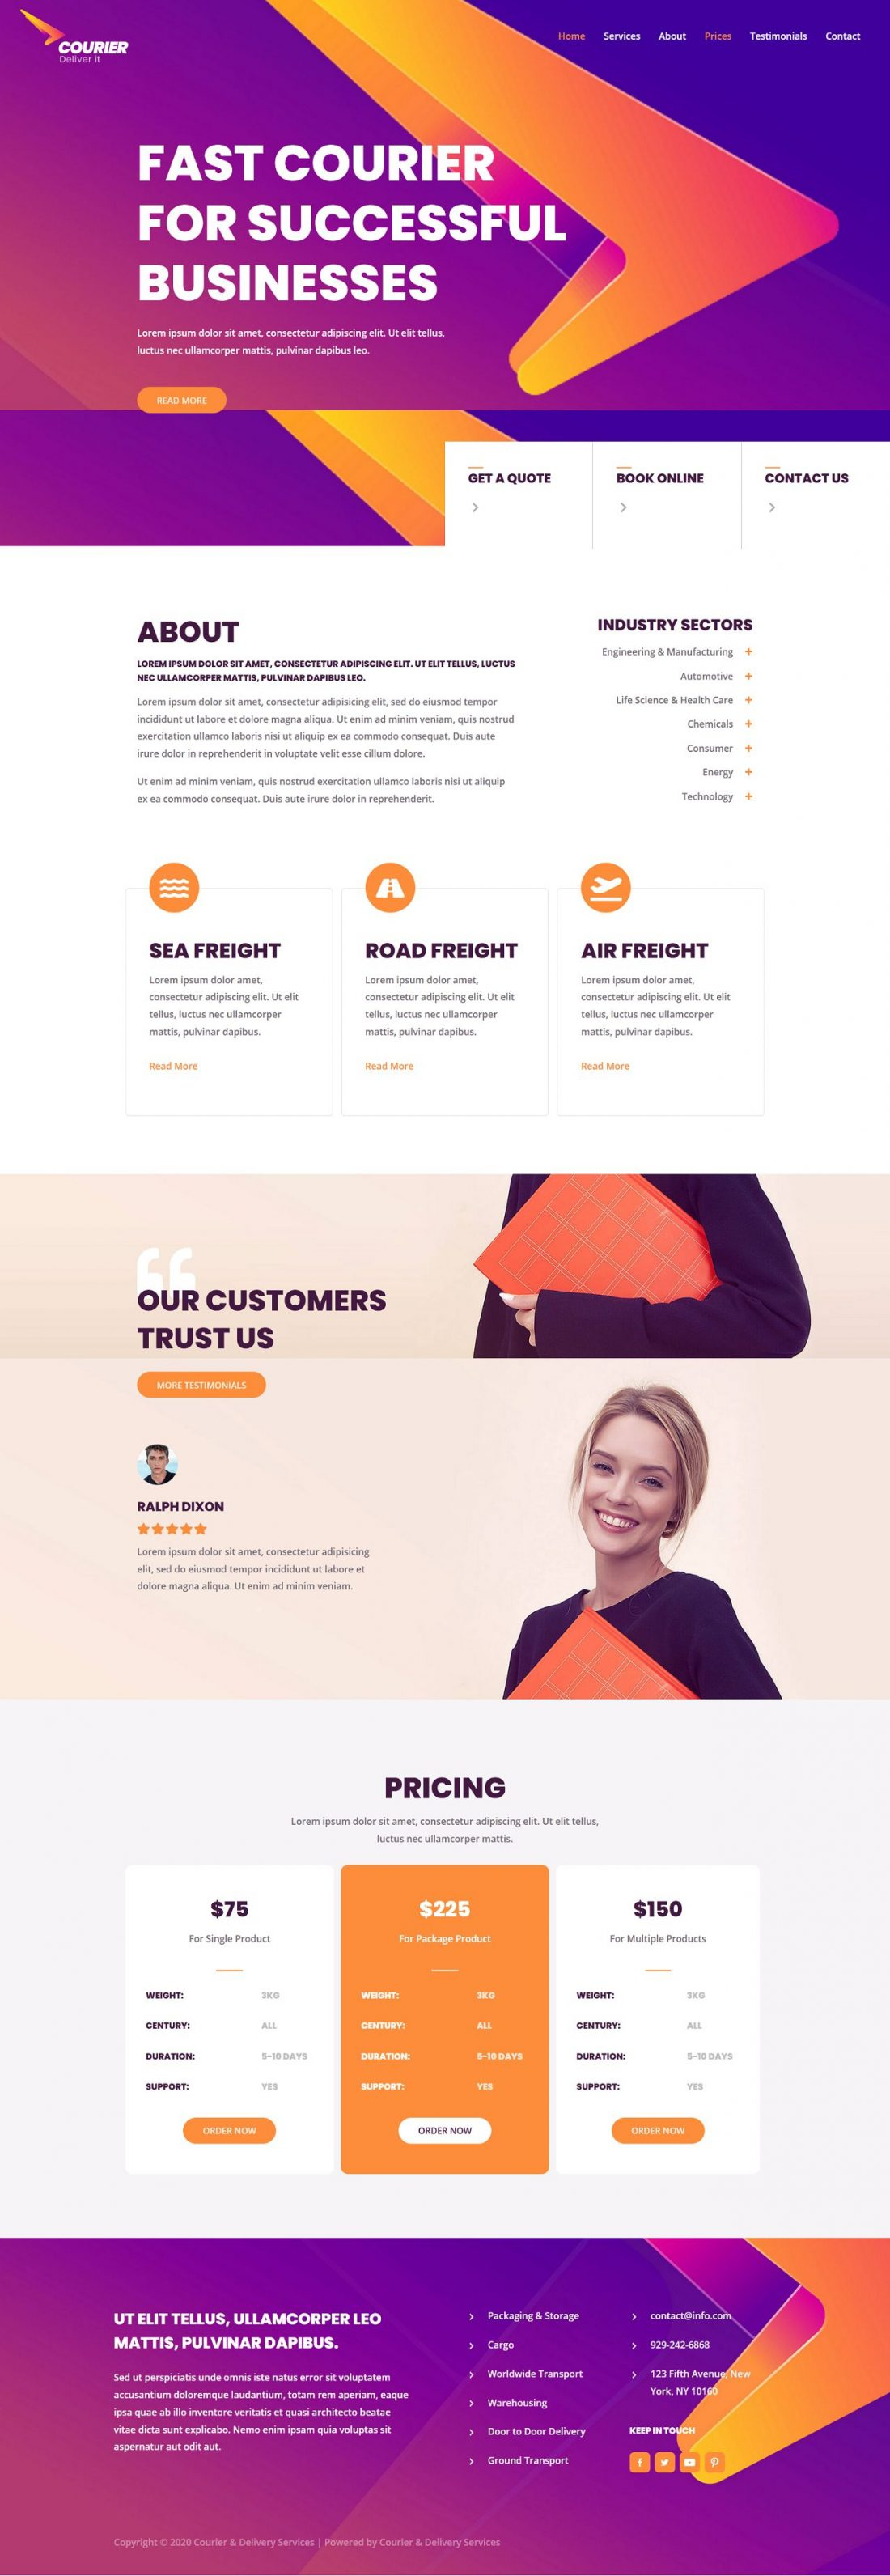 Fagowi.com Website Design Templates For Courier and Delivery Service - Home Page Image